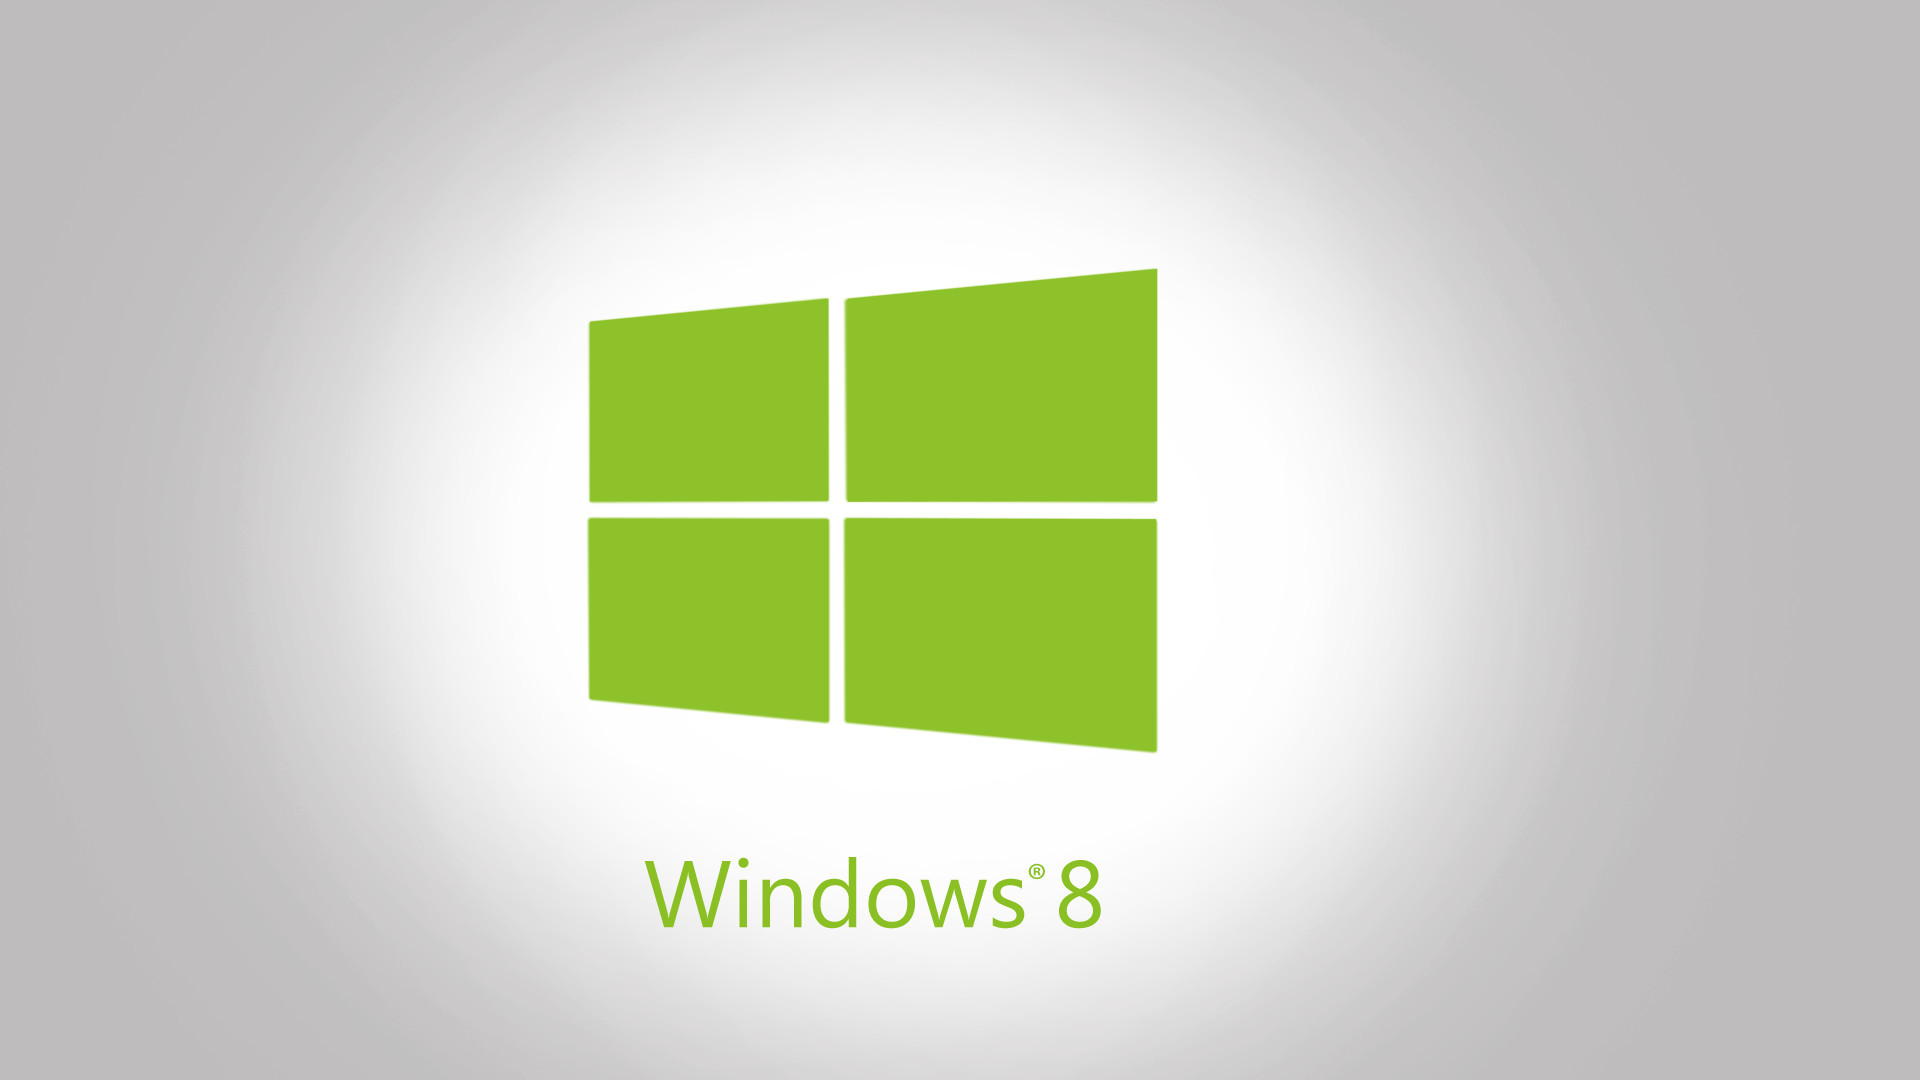 1920x1080  Windows 8 Logo Wallpaper HD